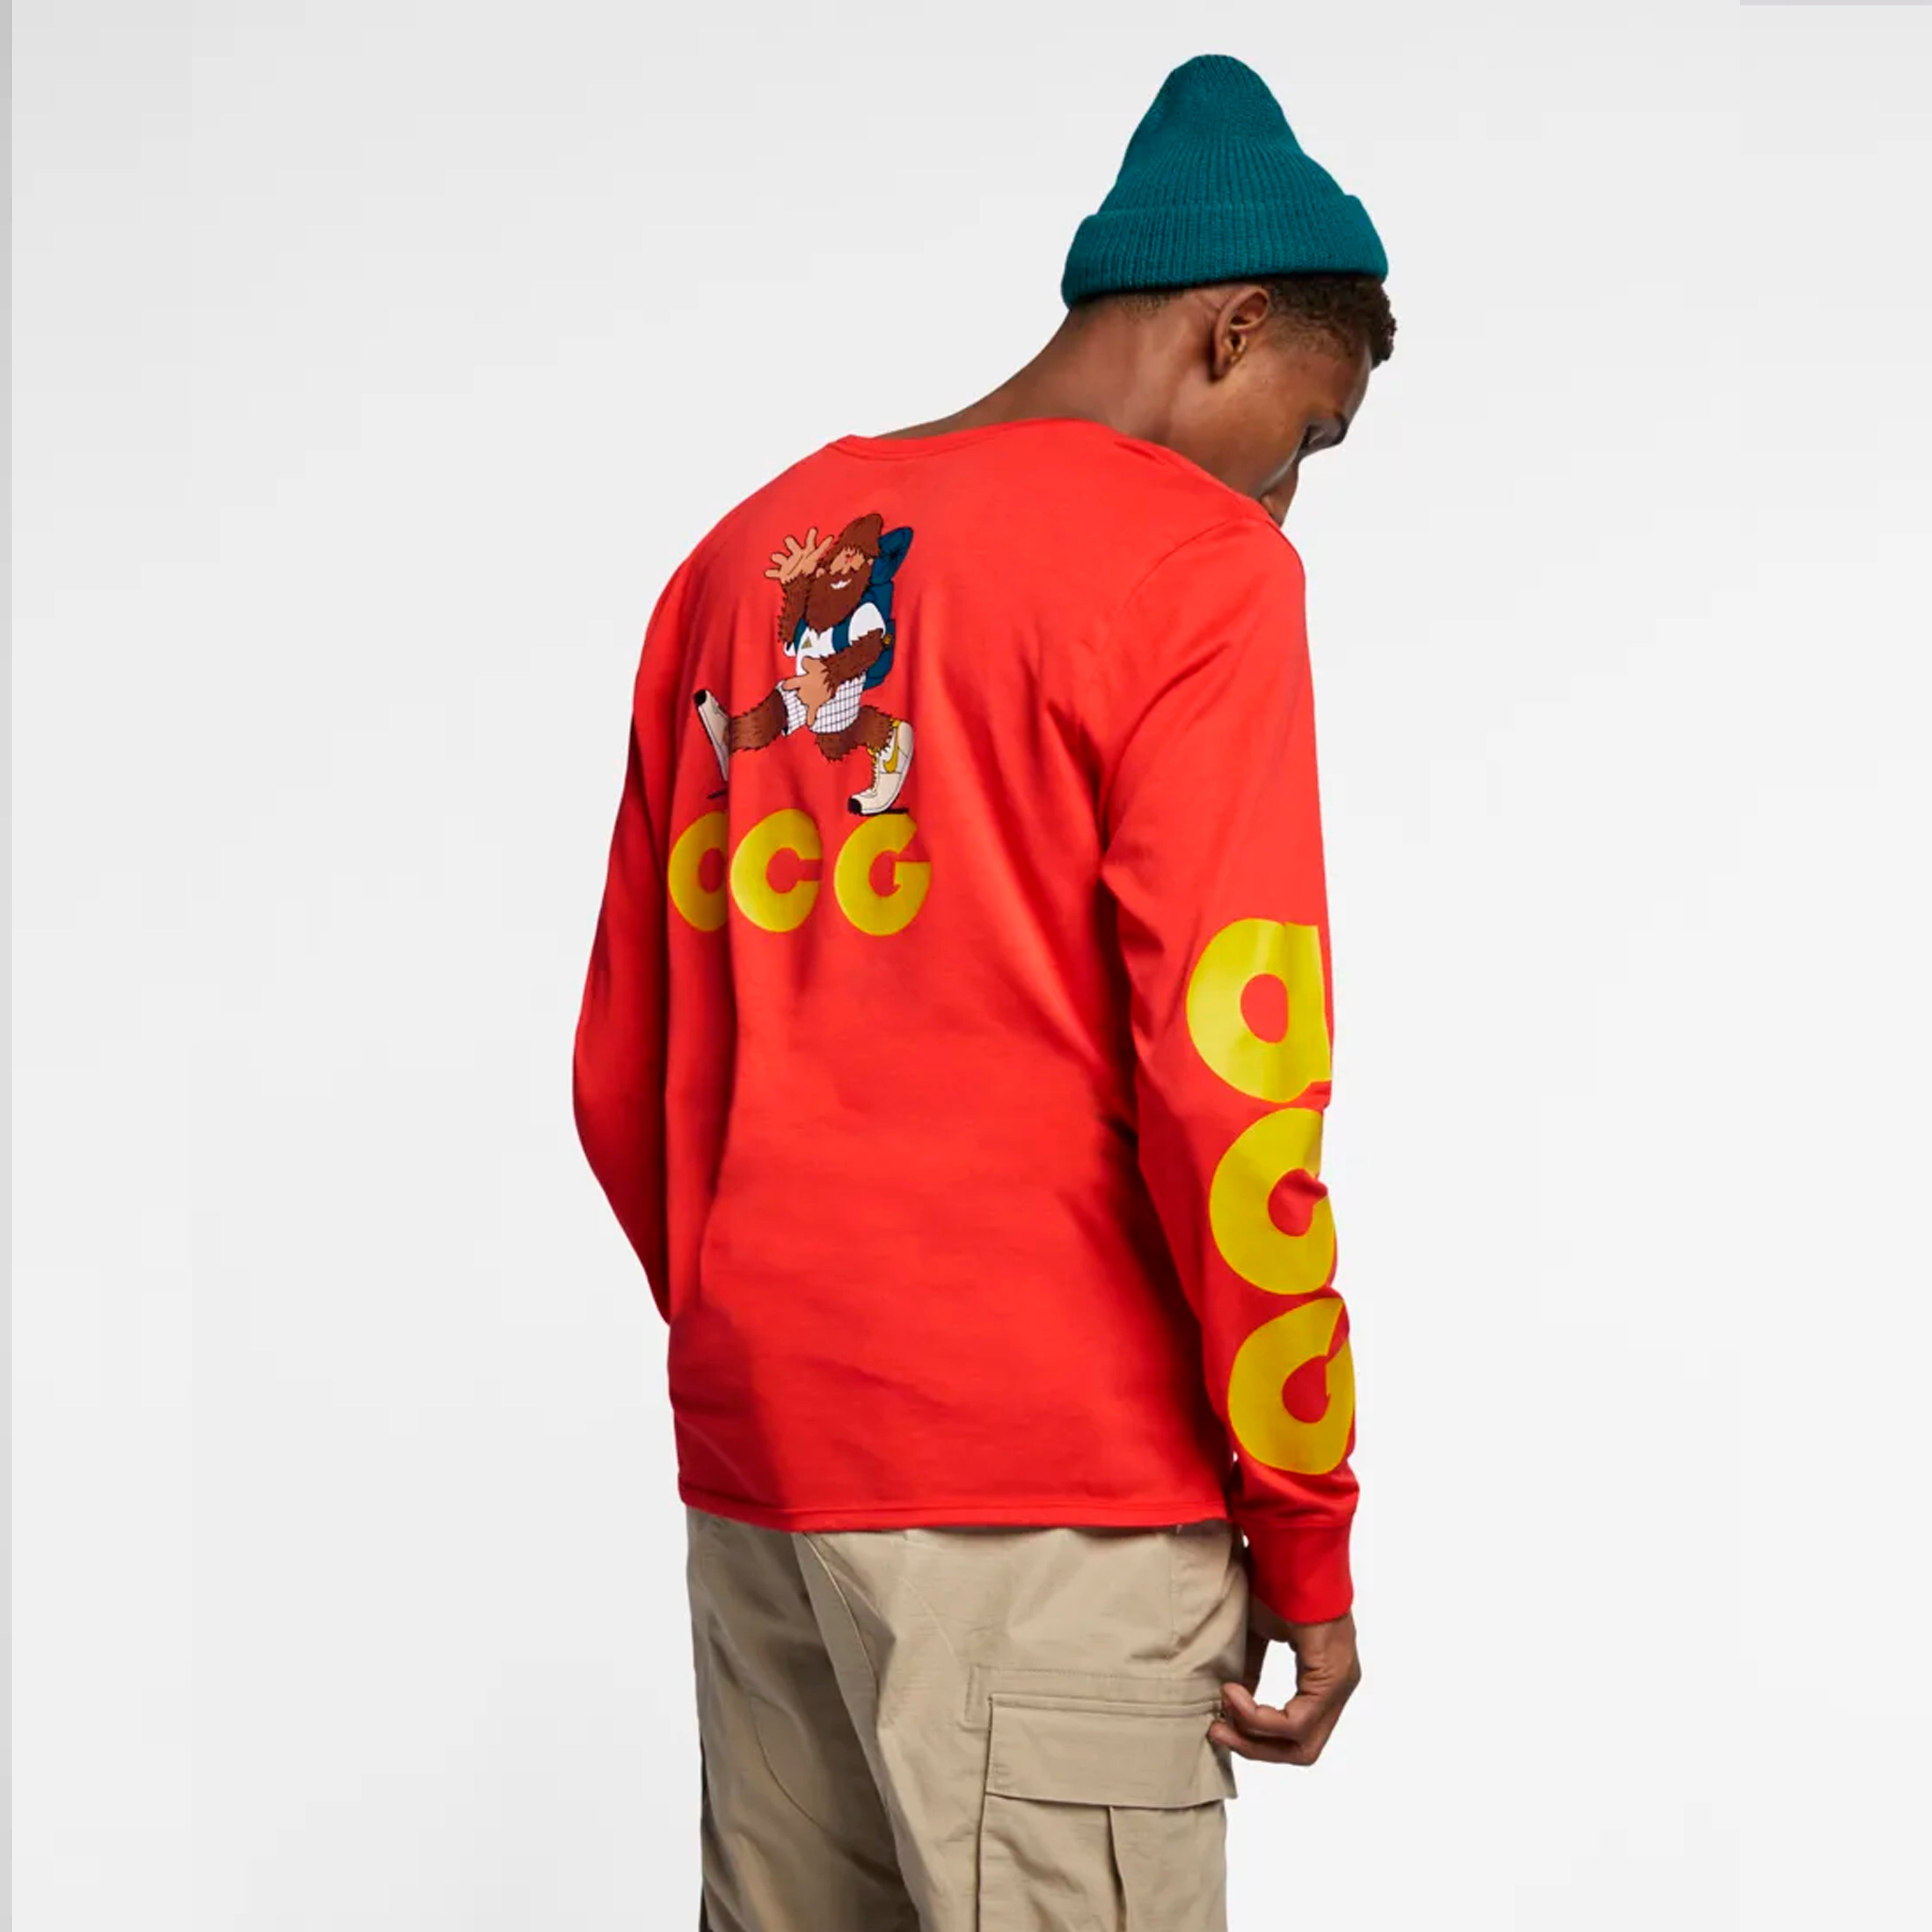 MEN'S LONG SLEEVE T-SHIRT - HABANERO RED